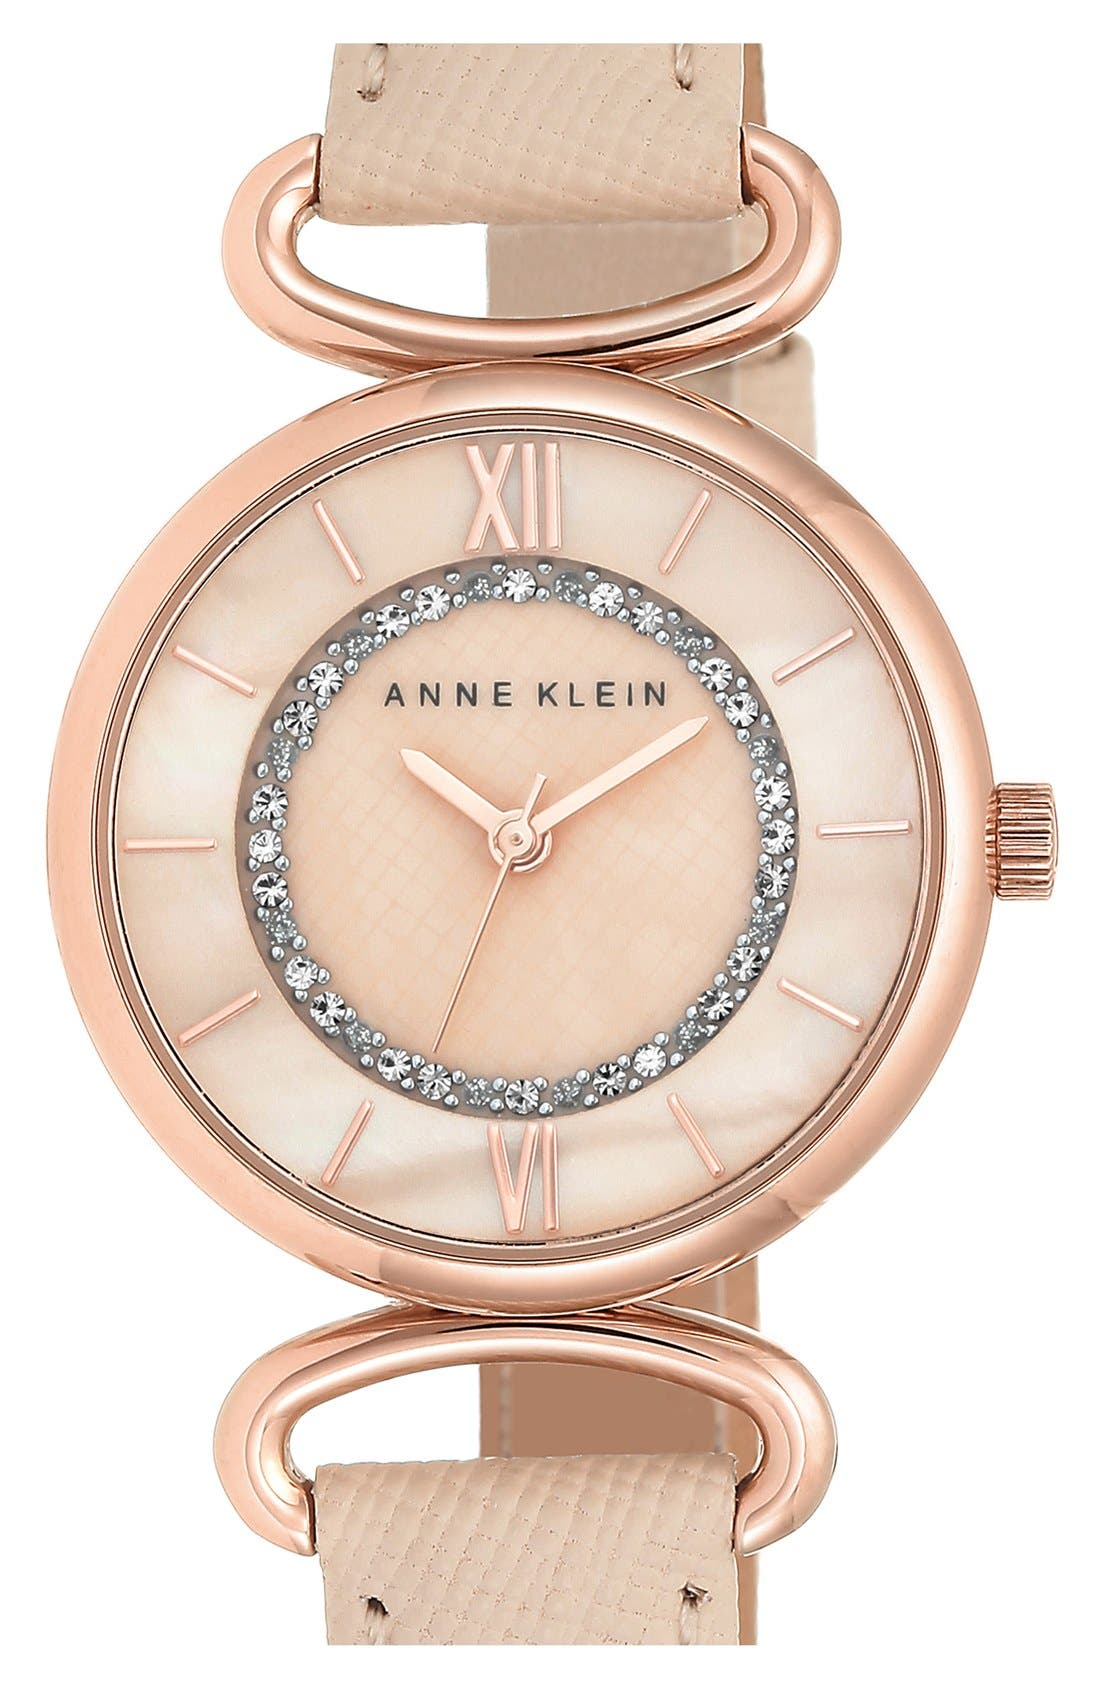 ANNE KLEIN Leather Strap Watch, 32mm